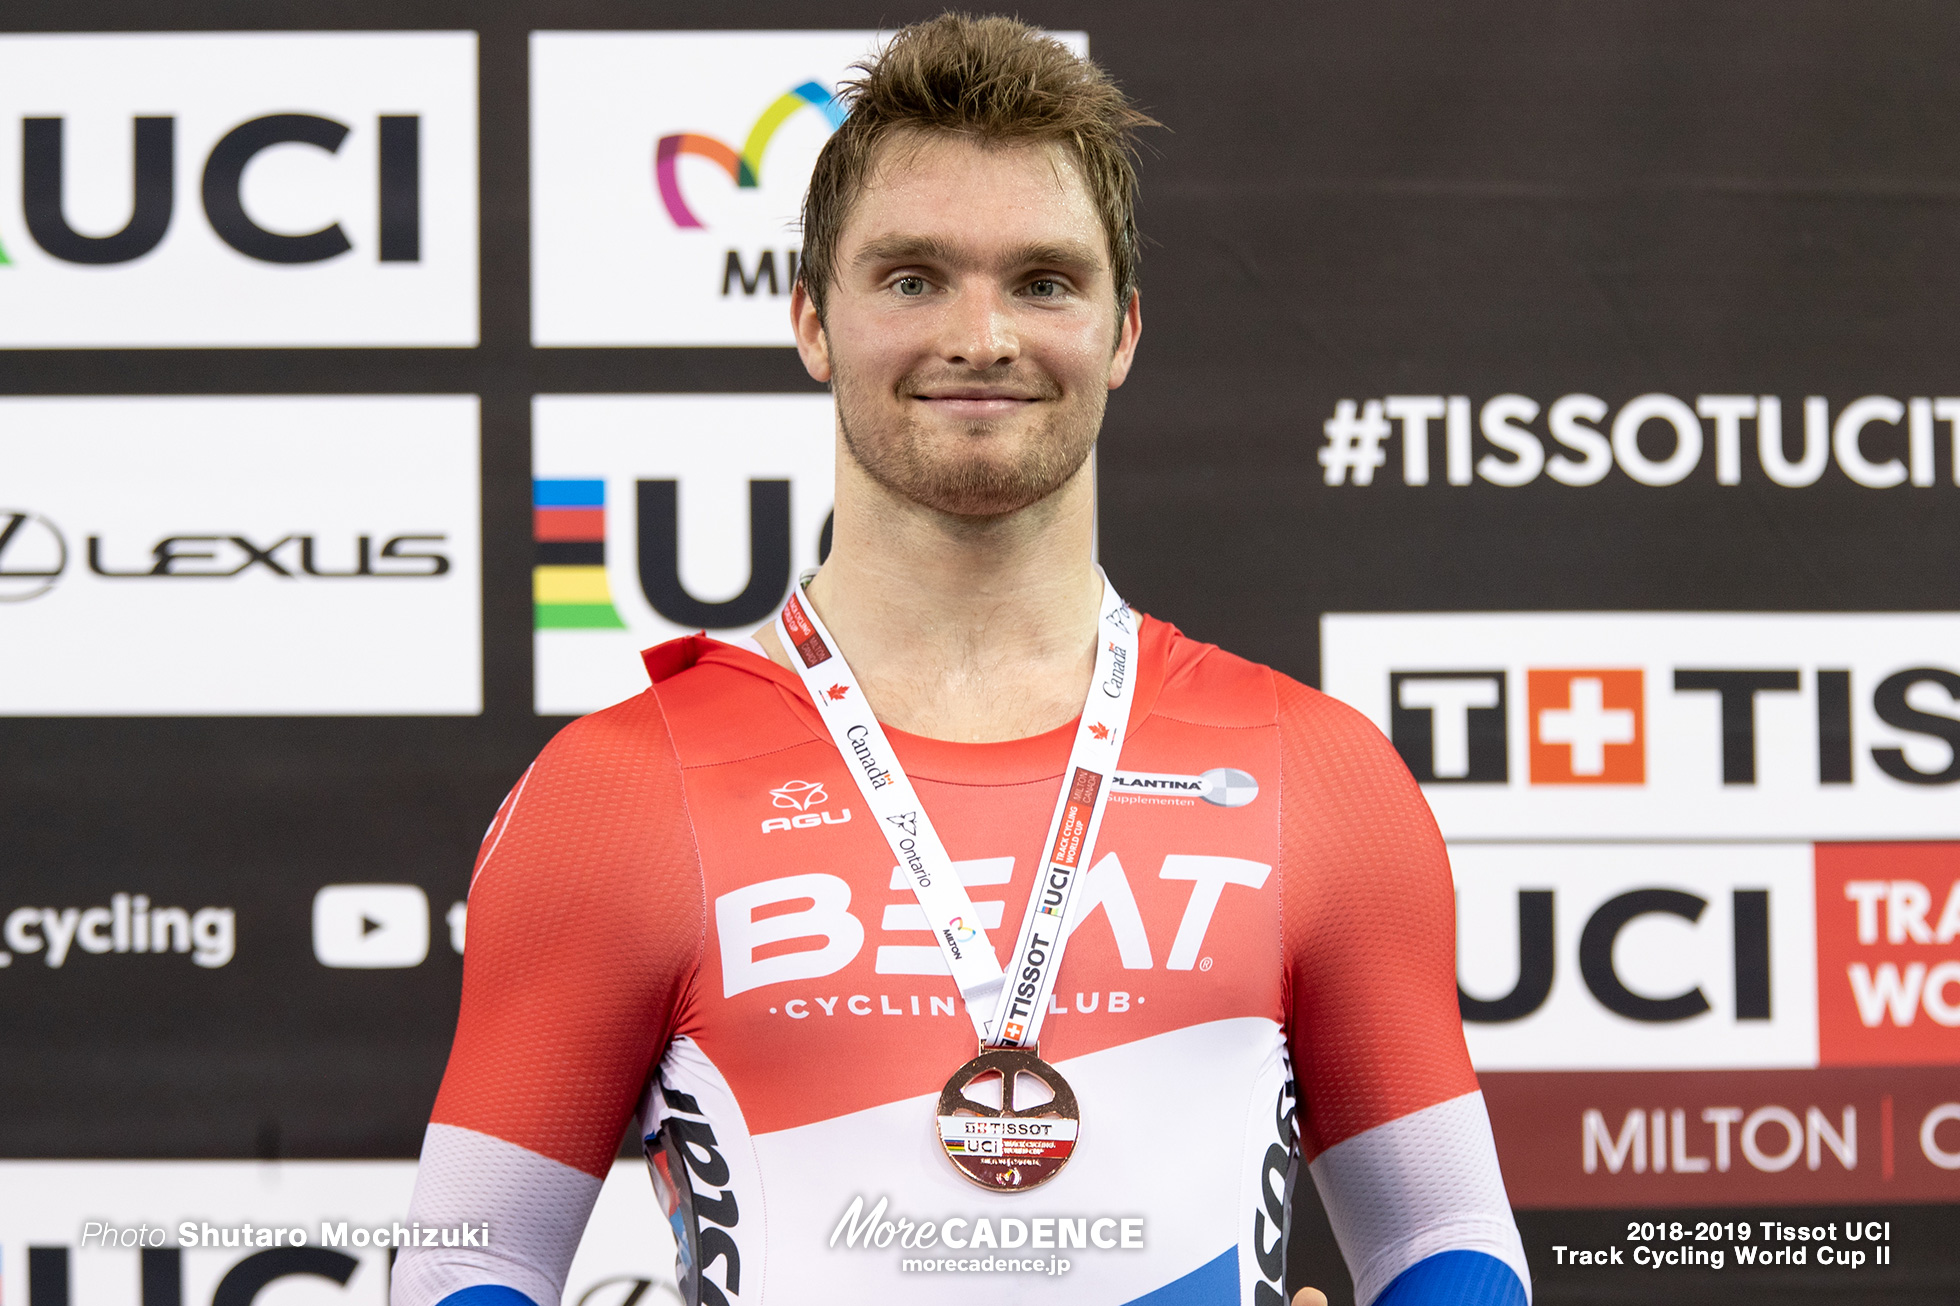 2018-2019 Tissot UCI Track Cycling World Cup II Men's Keirin Final